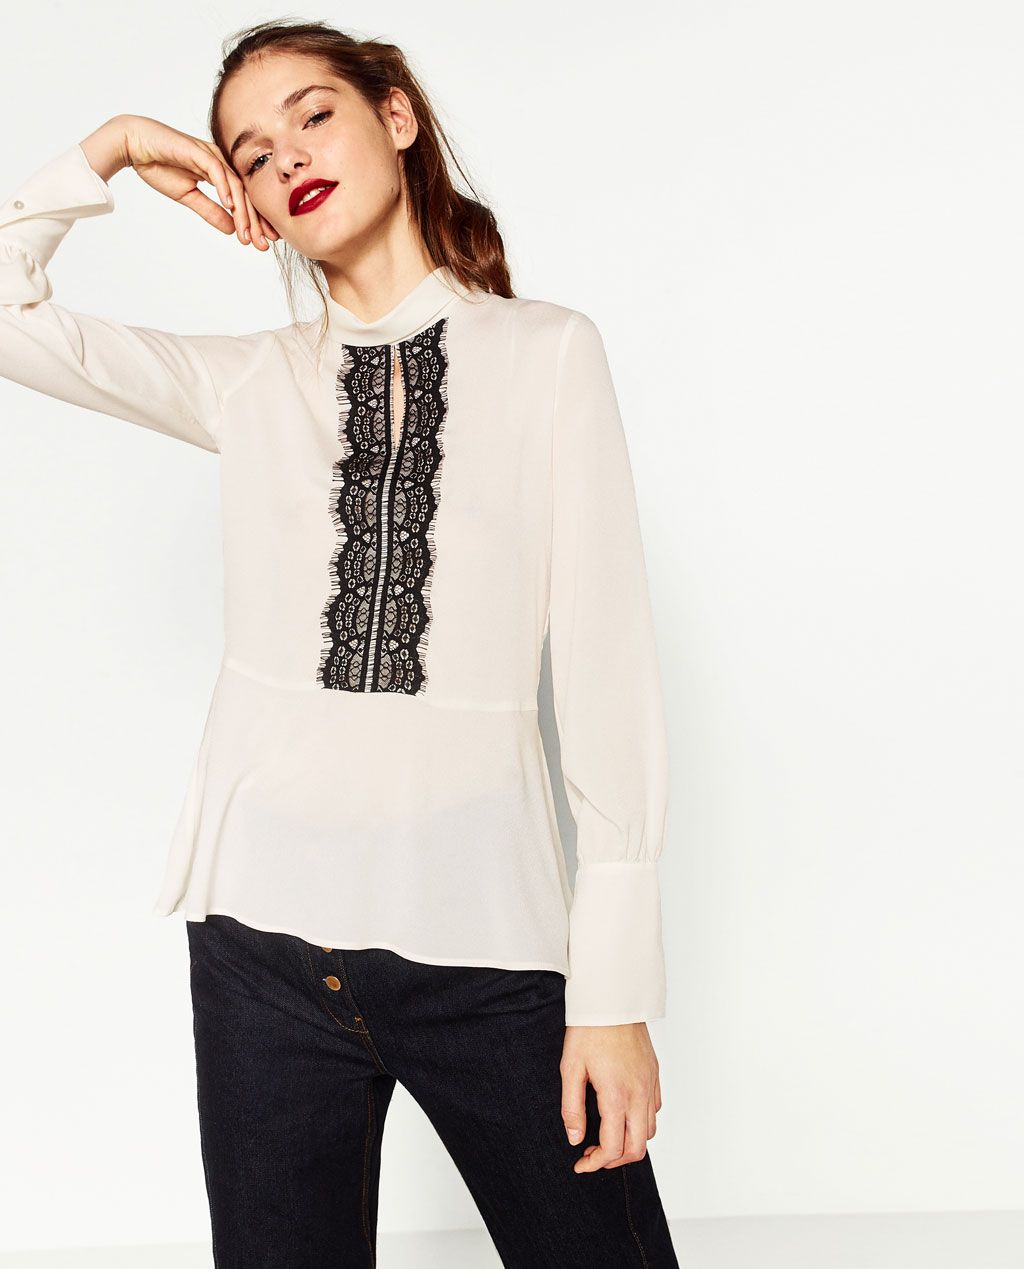 24f77321 Image 2 of CONTRAST LACE BLOUSE from Zara | blouses | Blusas de ...